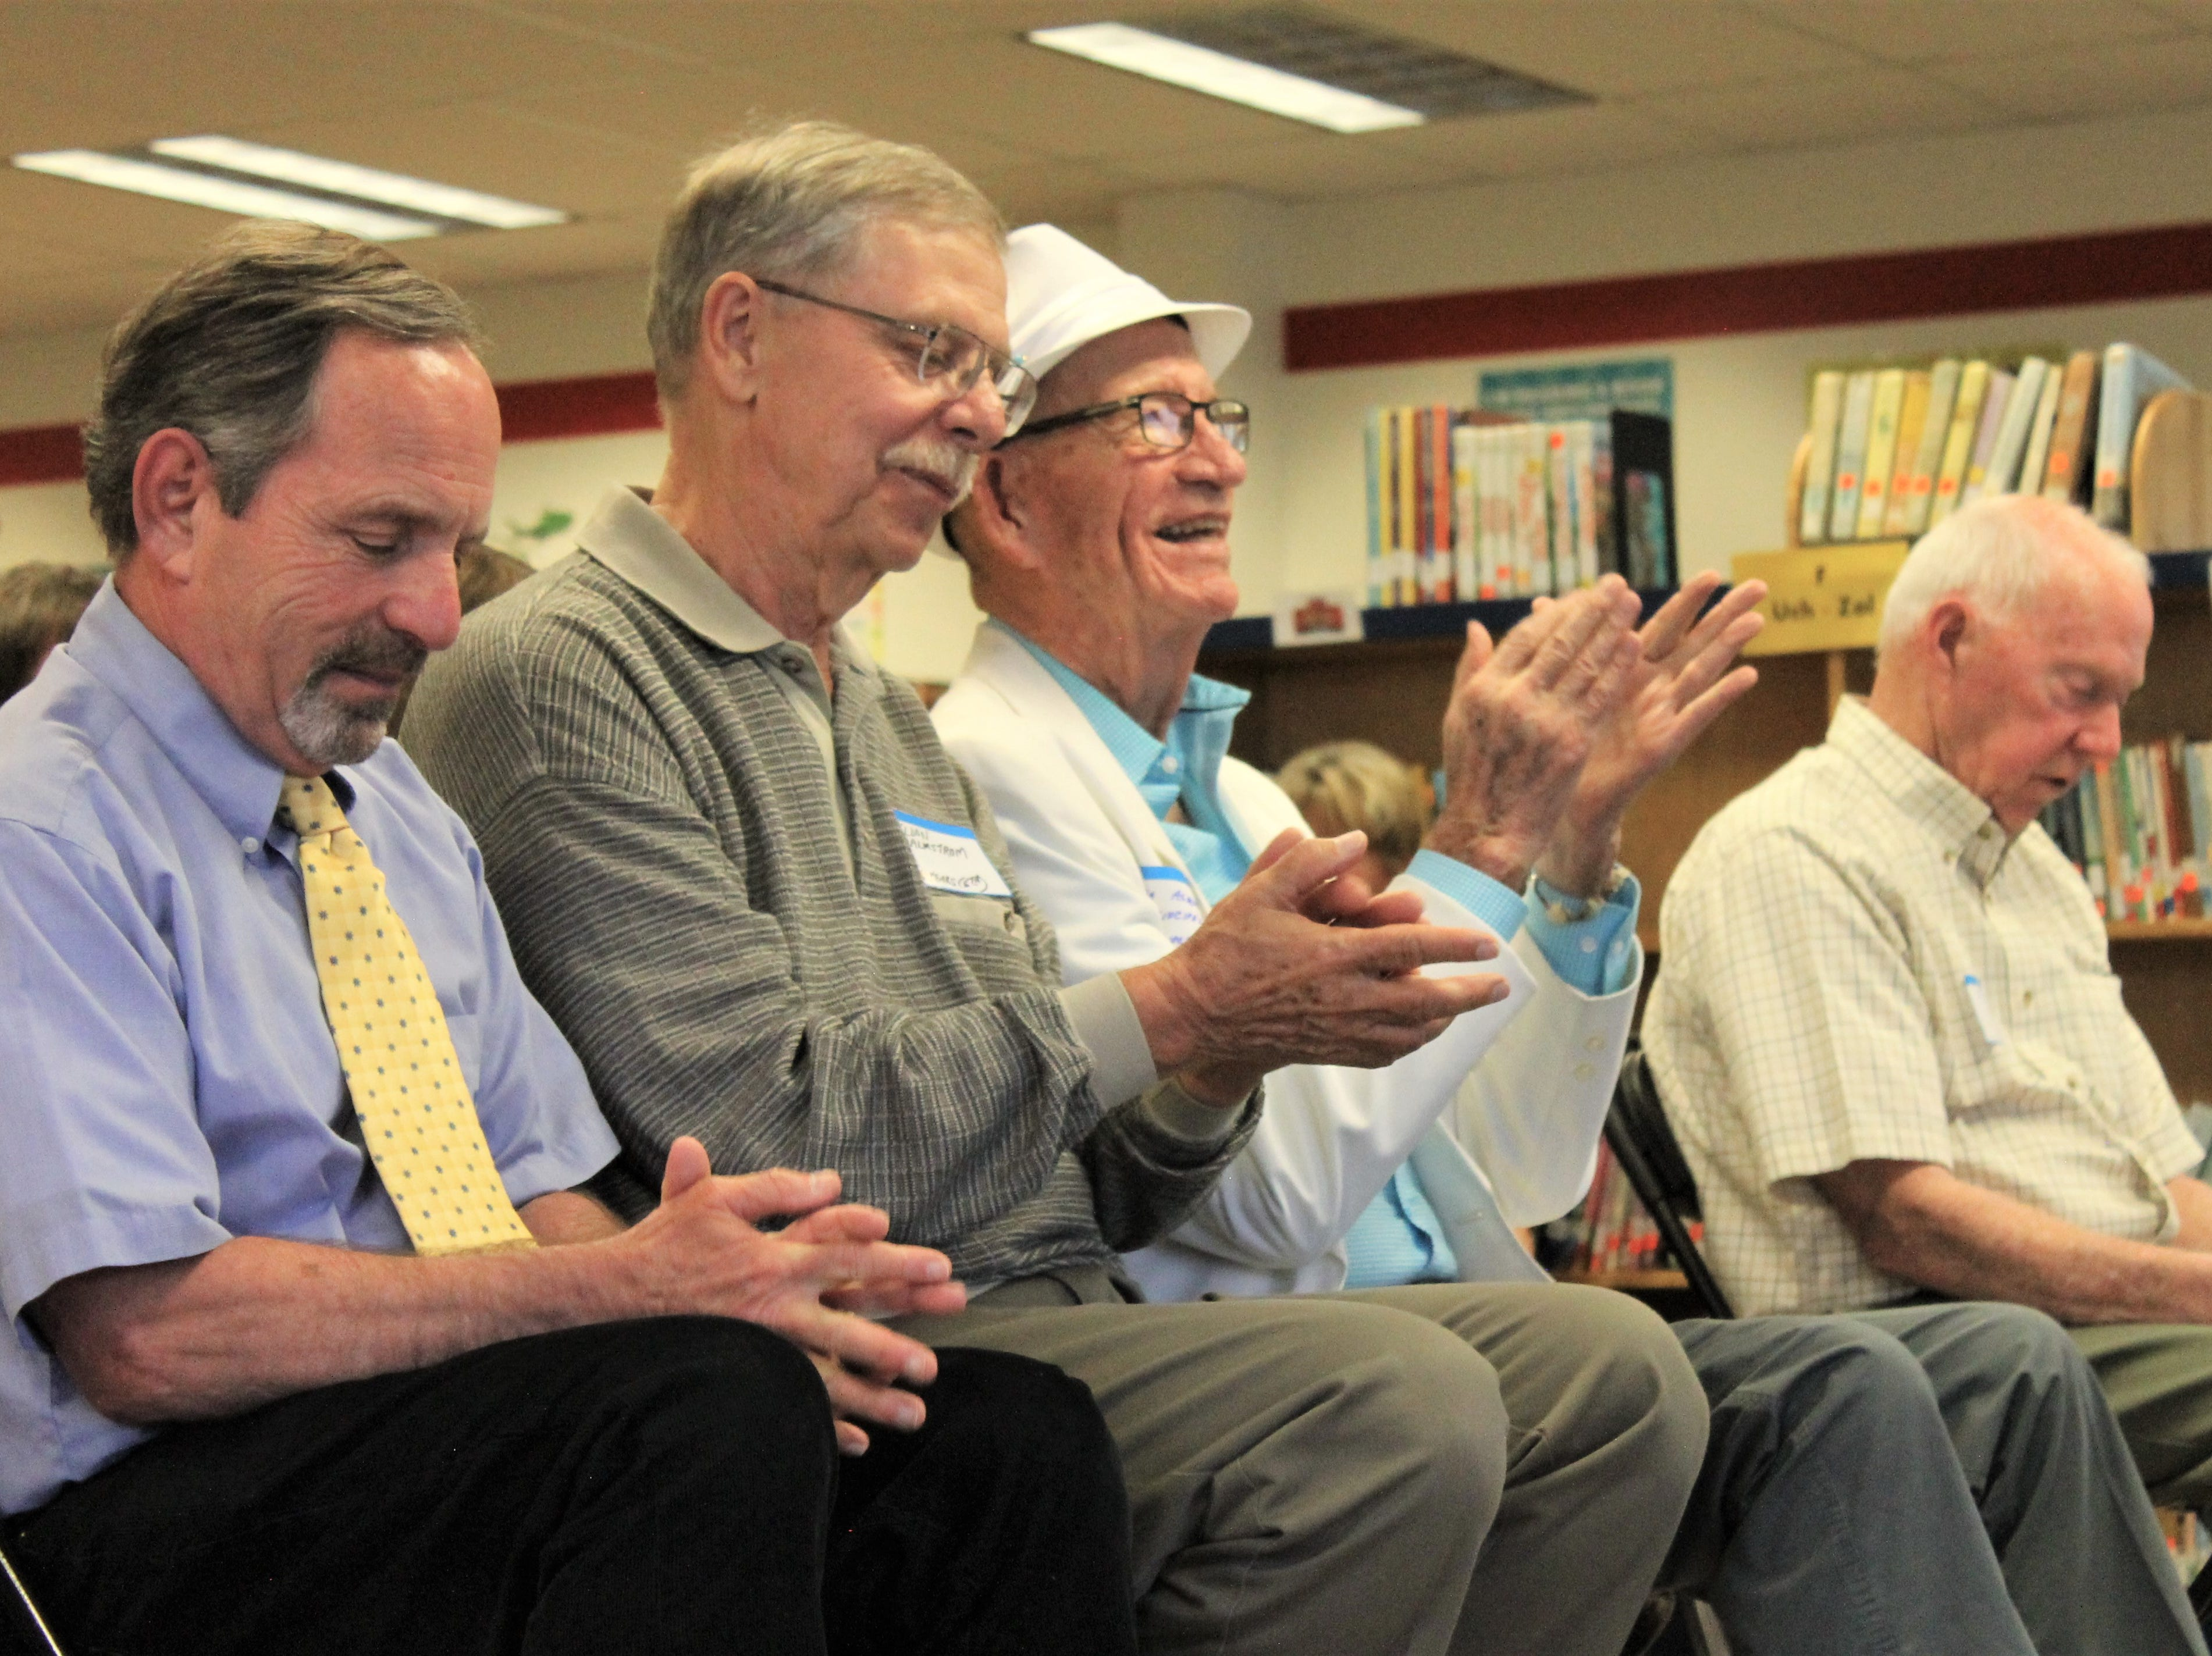 David Hodge, former principal, Eldon Malmstrom, former teacher, Bob Asmus, former principal, and Paul Huff, former principal sit in the front row Friday, April 26, 2019 at Riffenburgh Elementary School's 50th anniversary celebration.